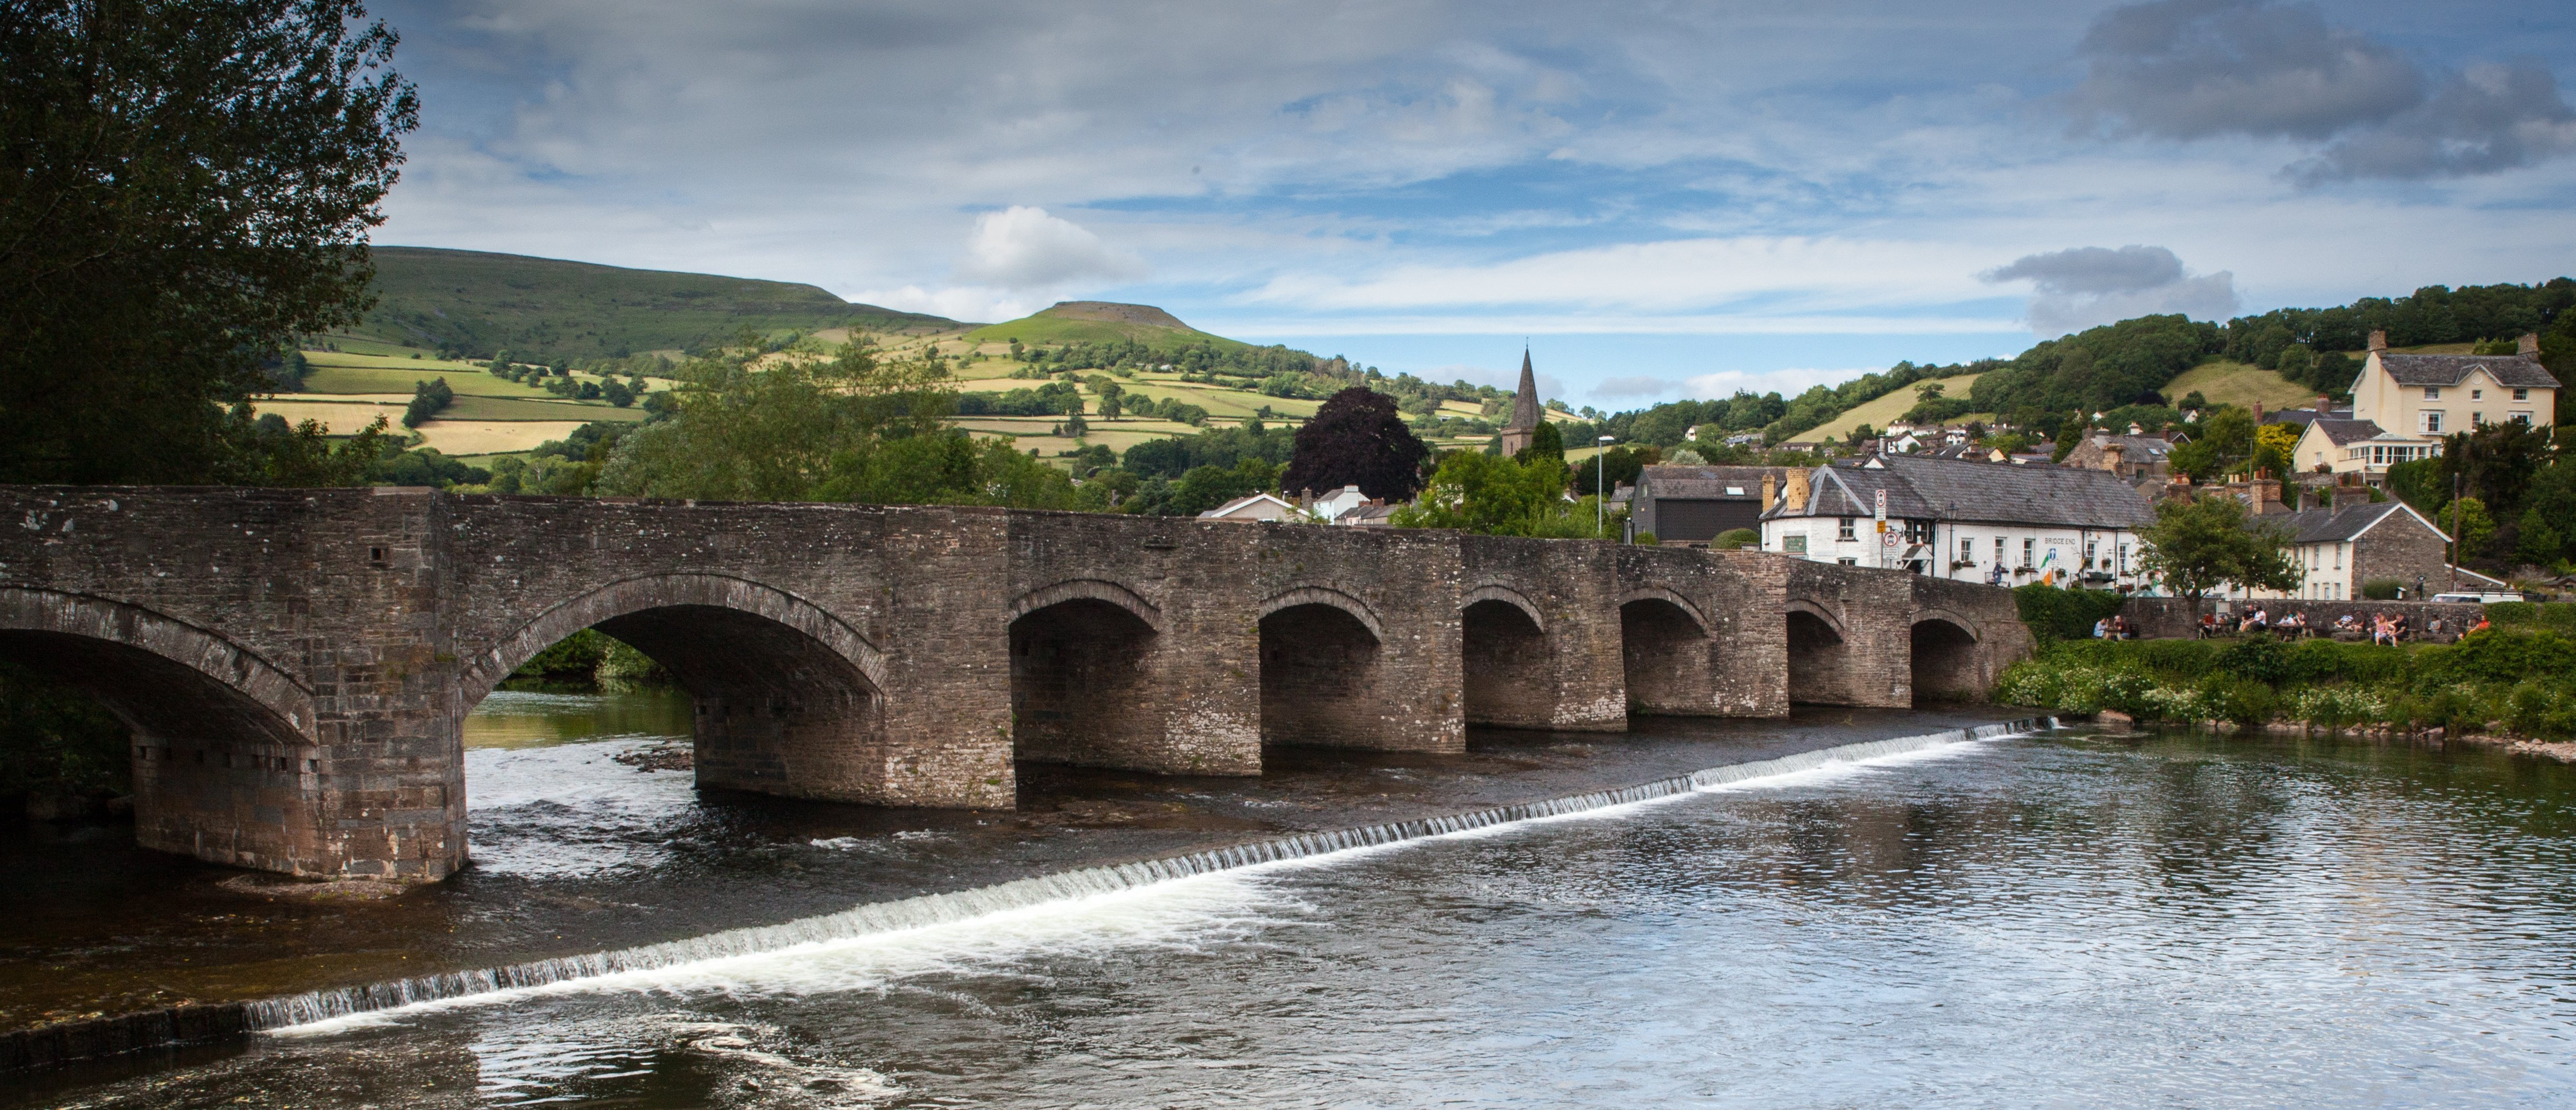 The Picturesque route into Crickhowell